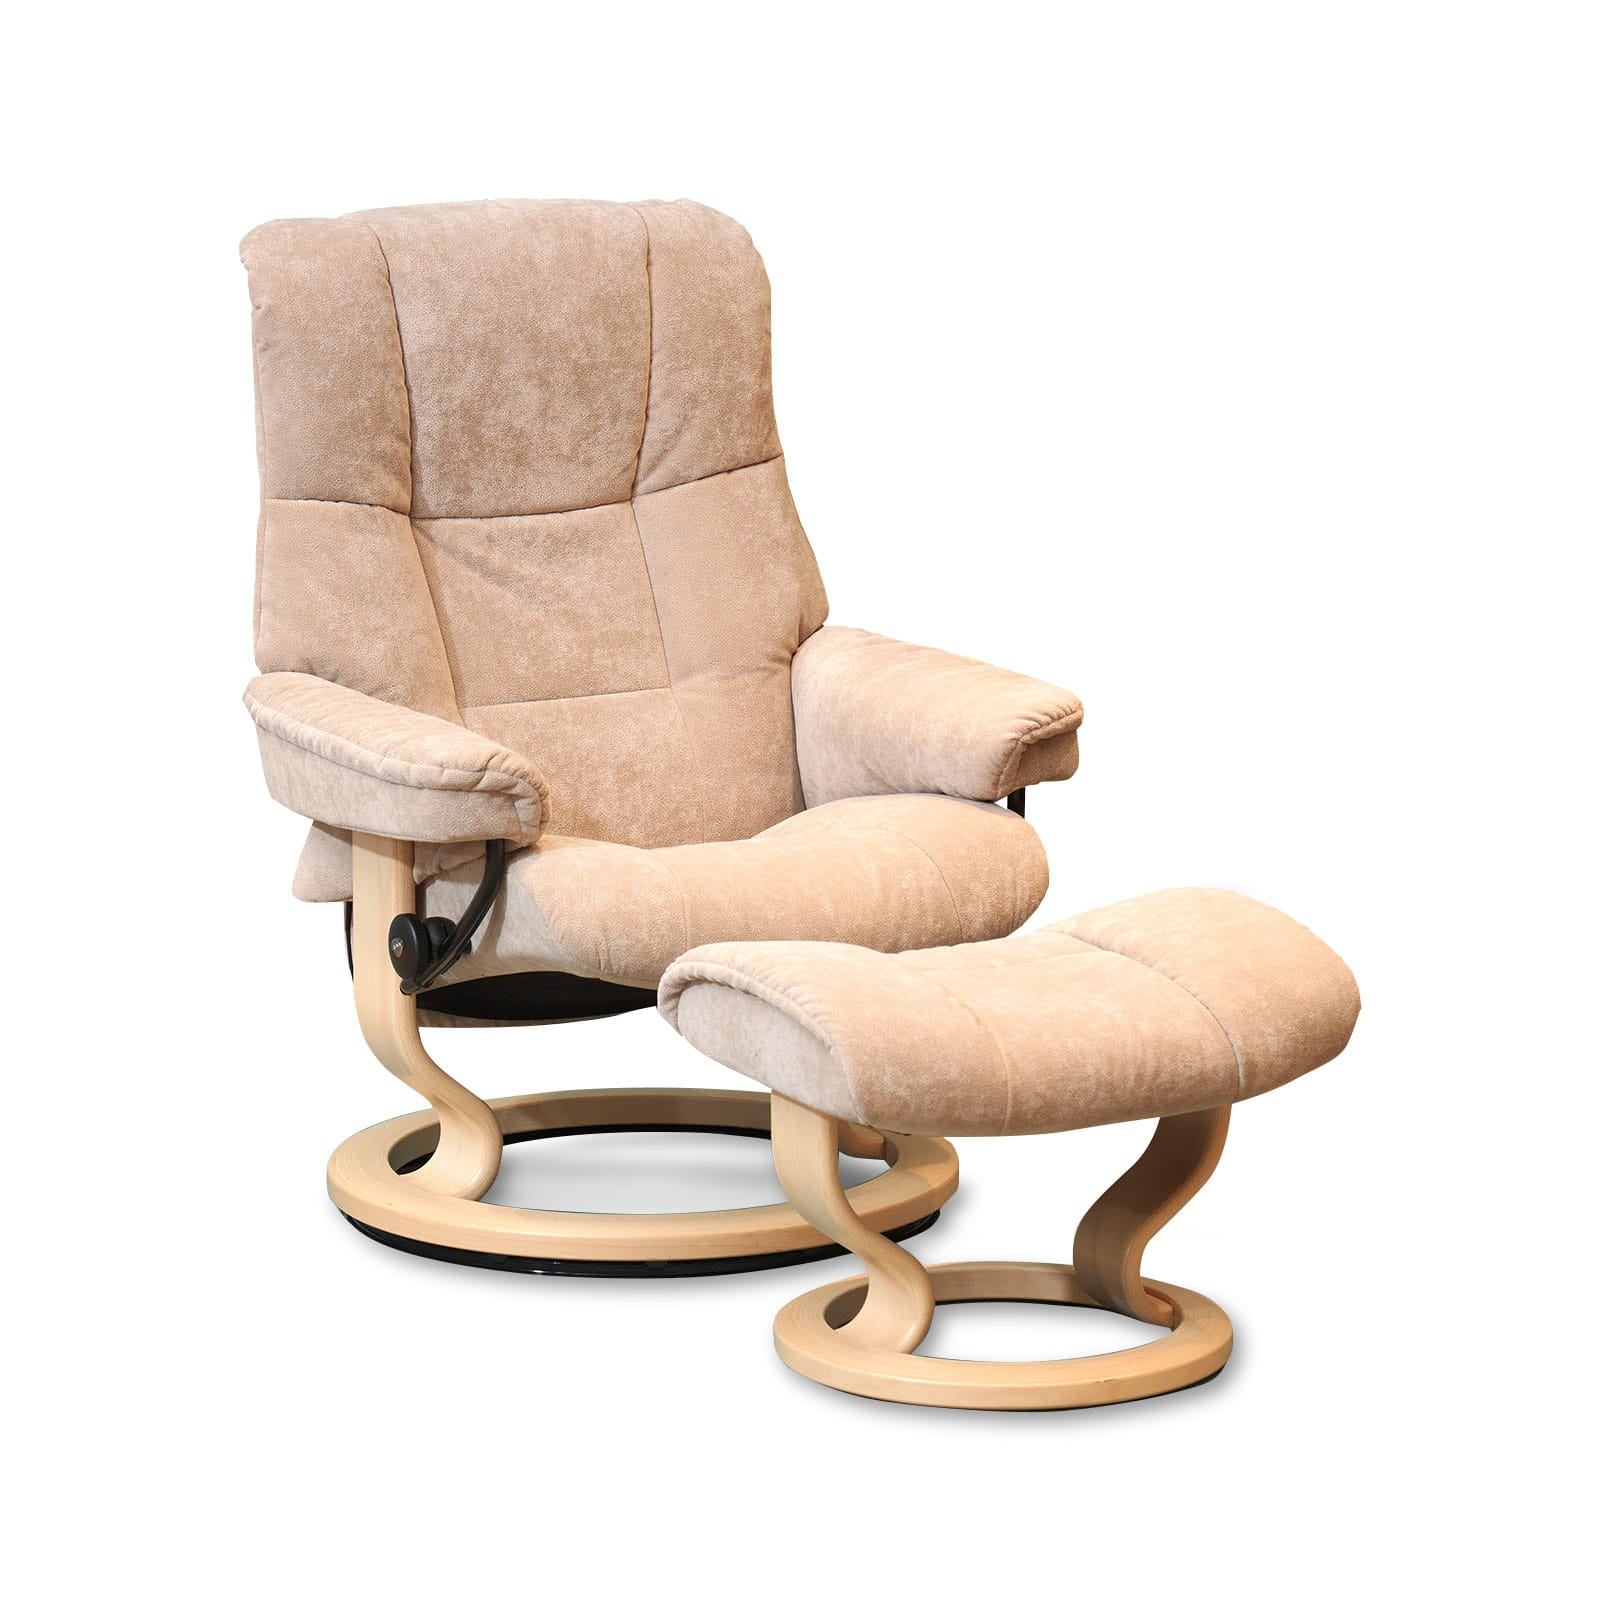 Stressless Sessel Mit Hocker Stressless Sessel Mayfair Stoff Karma Dark Beige Mit Hocker